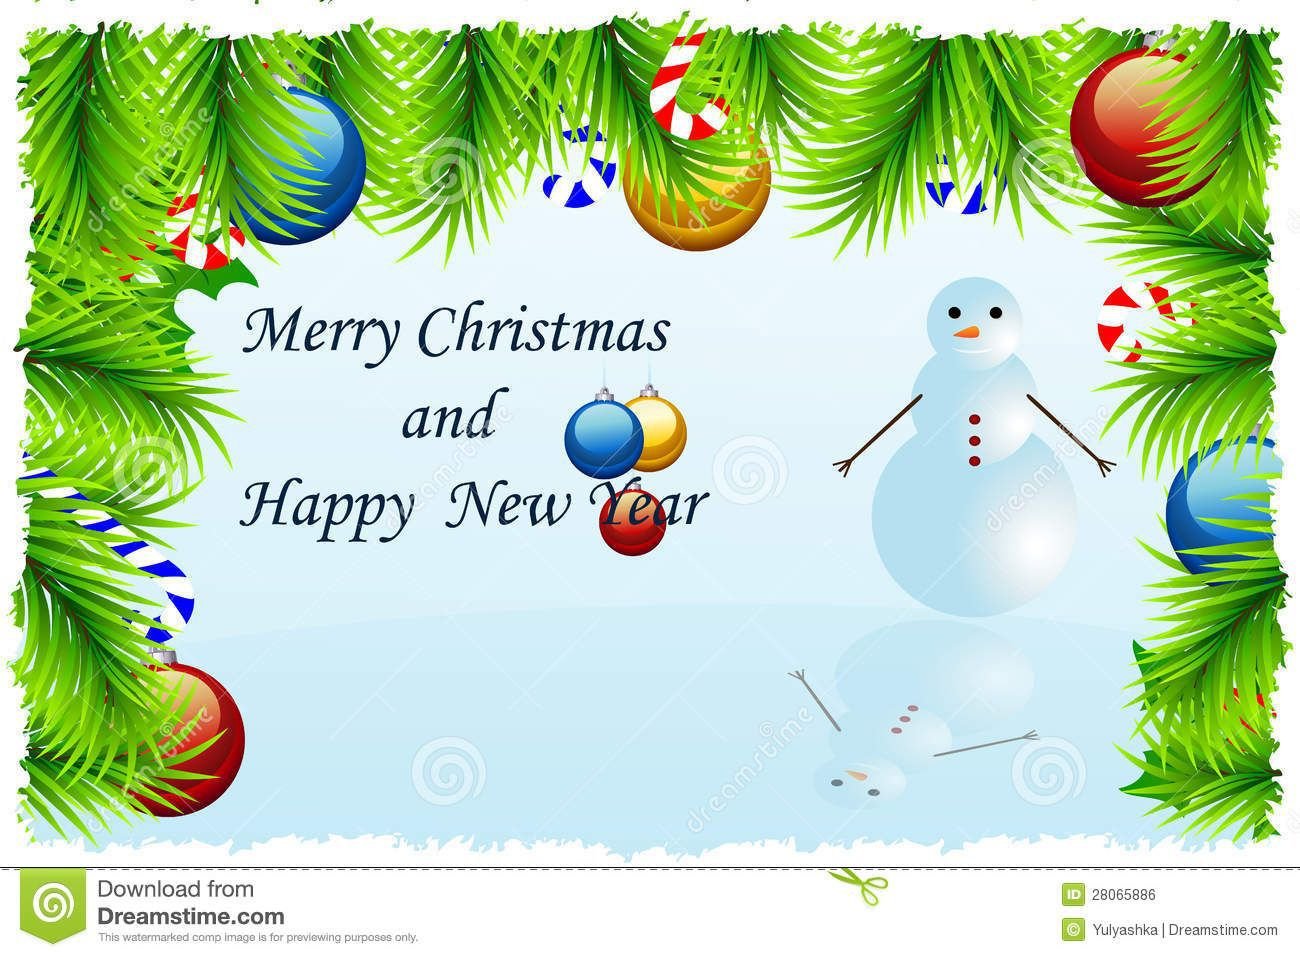 002 Fearsome Christma Card Template Free Download Inspiration  Photo Xma PlaceFull